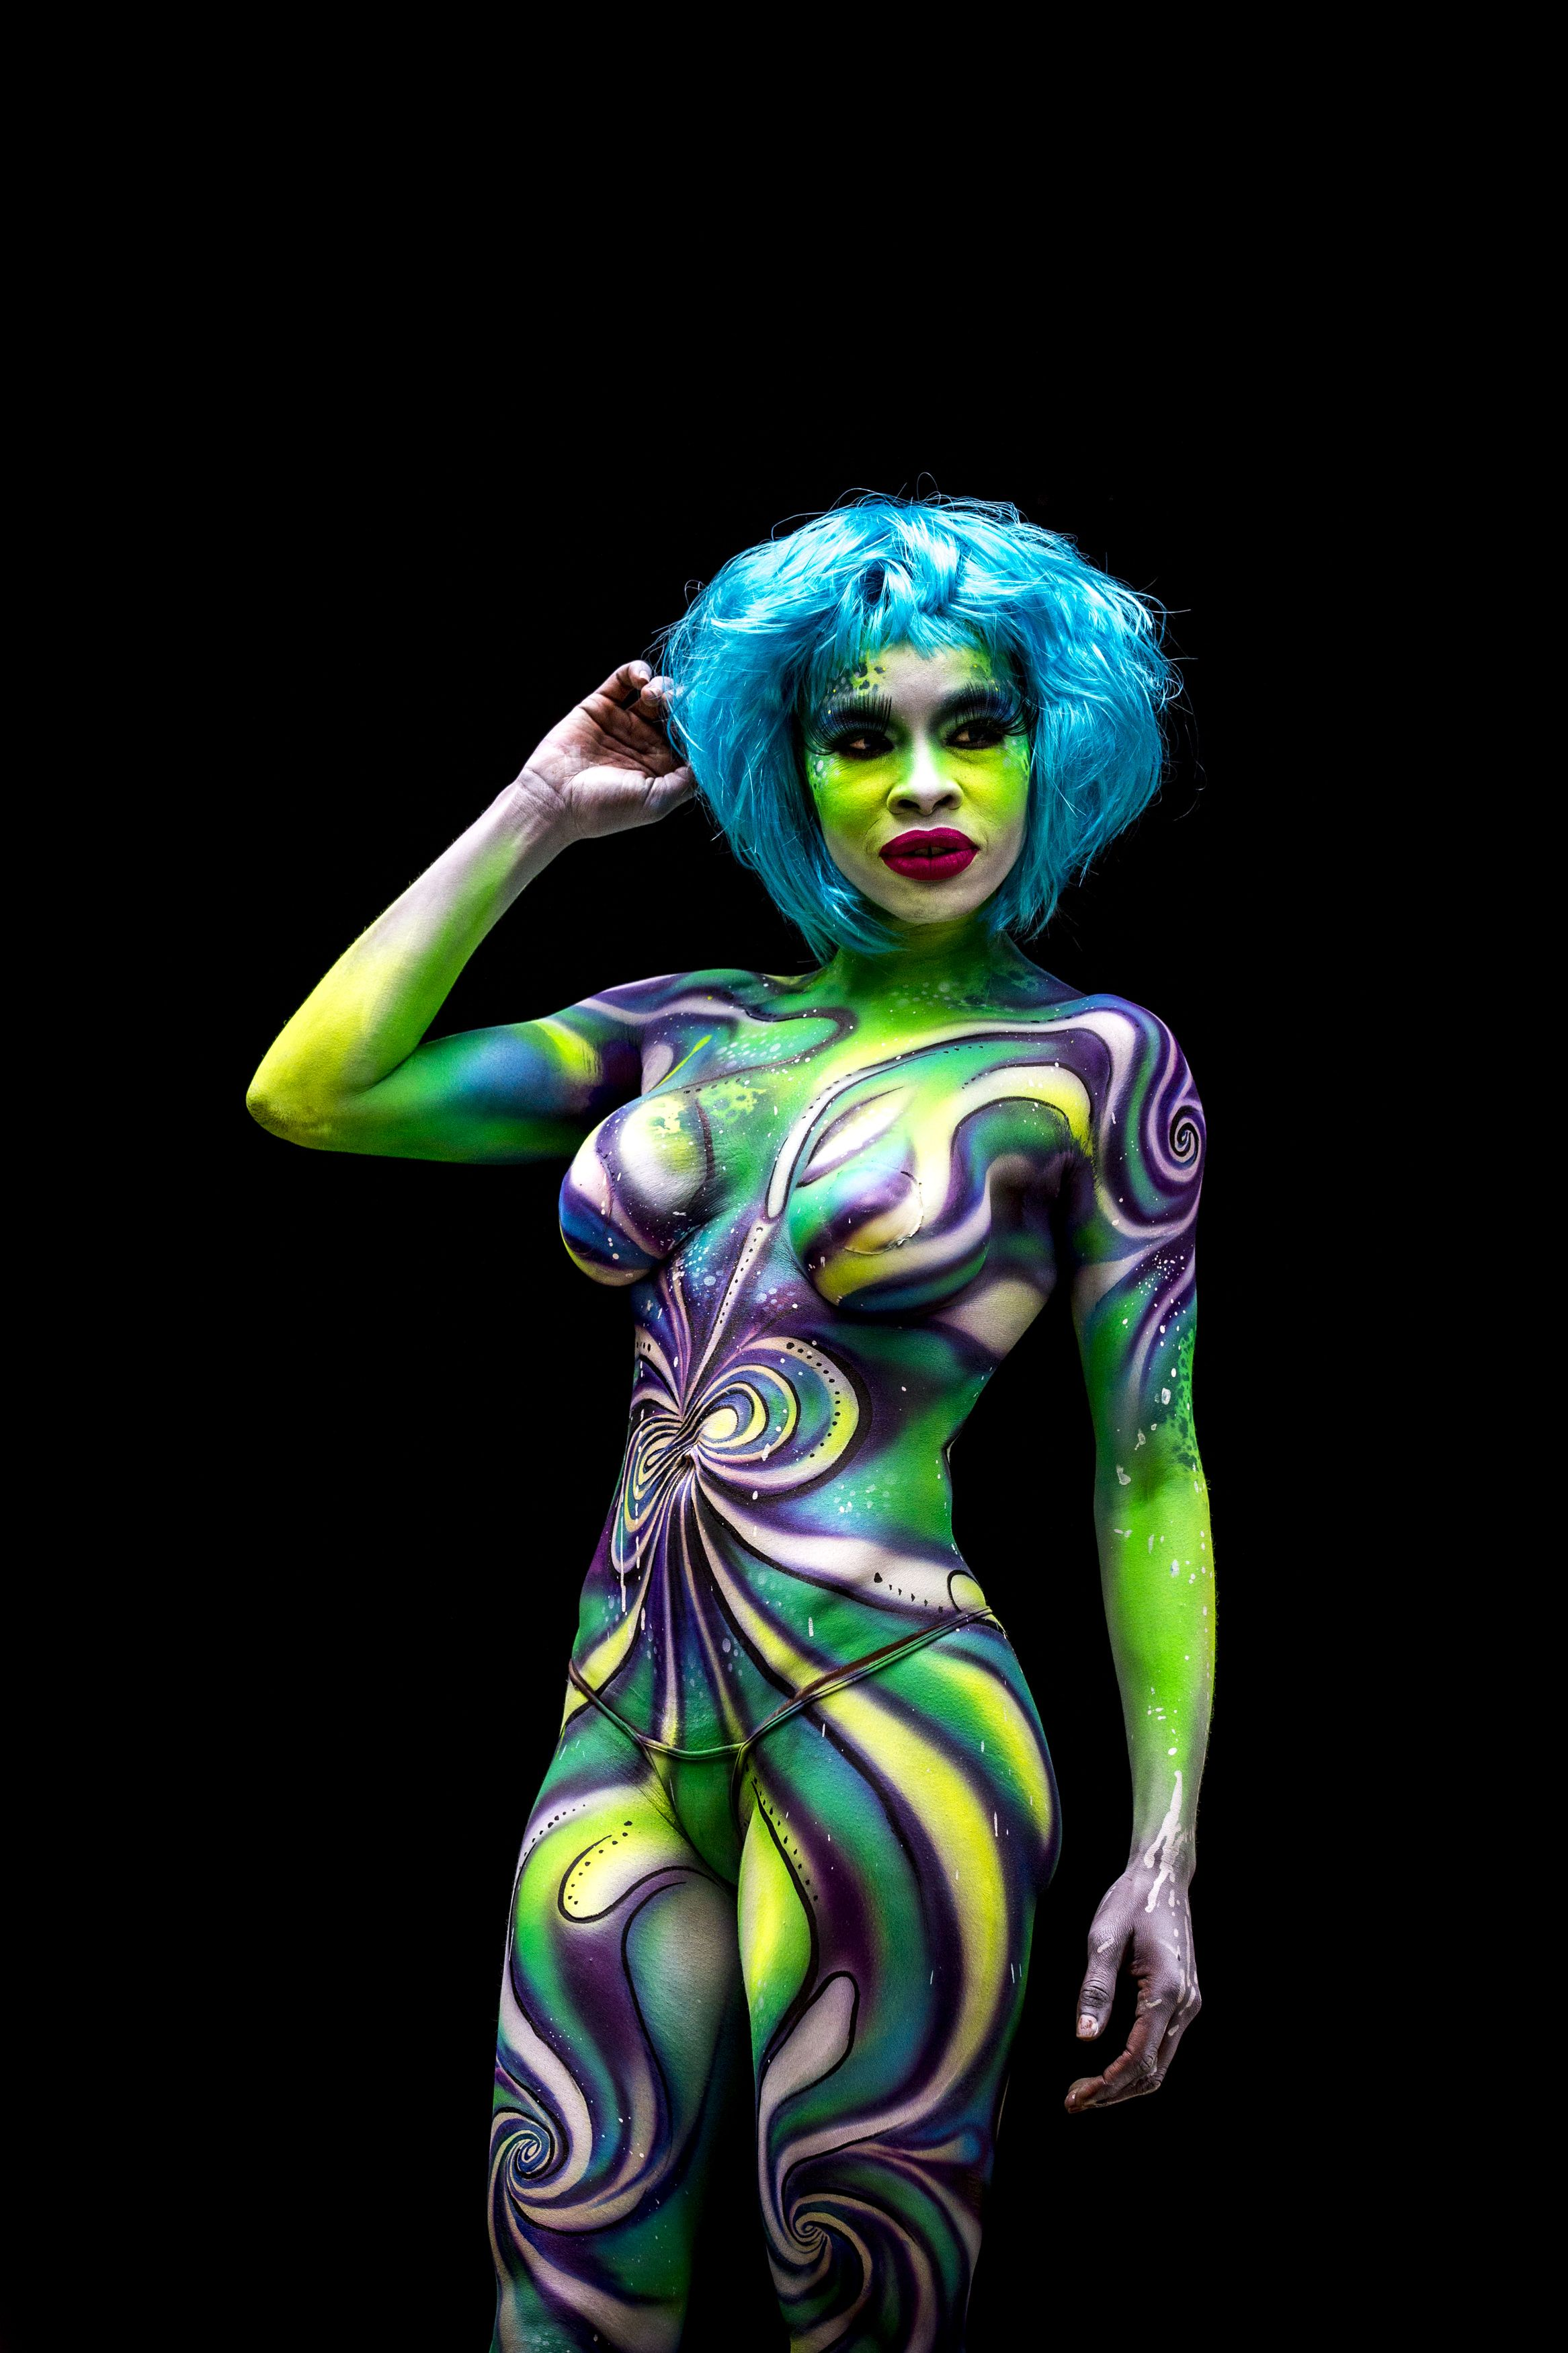 World Bodypainting Festival 2014 | Body painting and Body paint